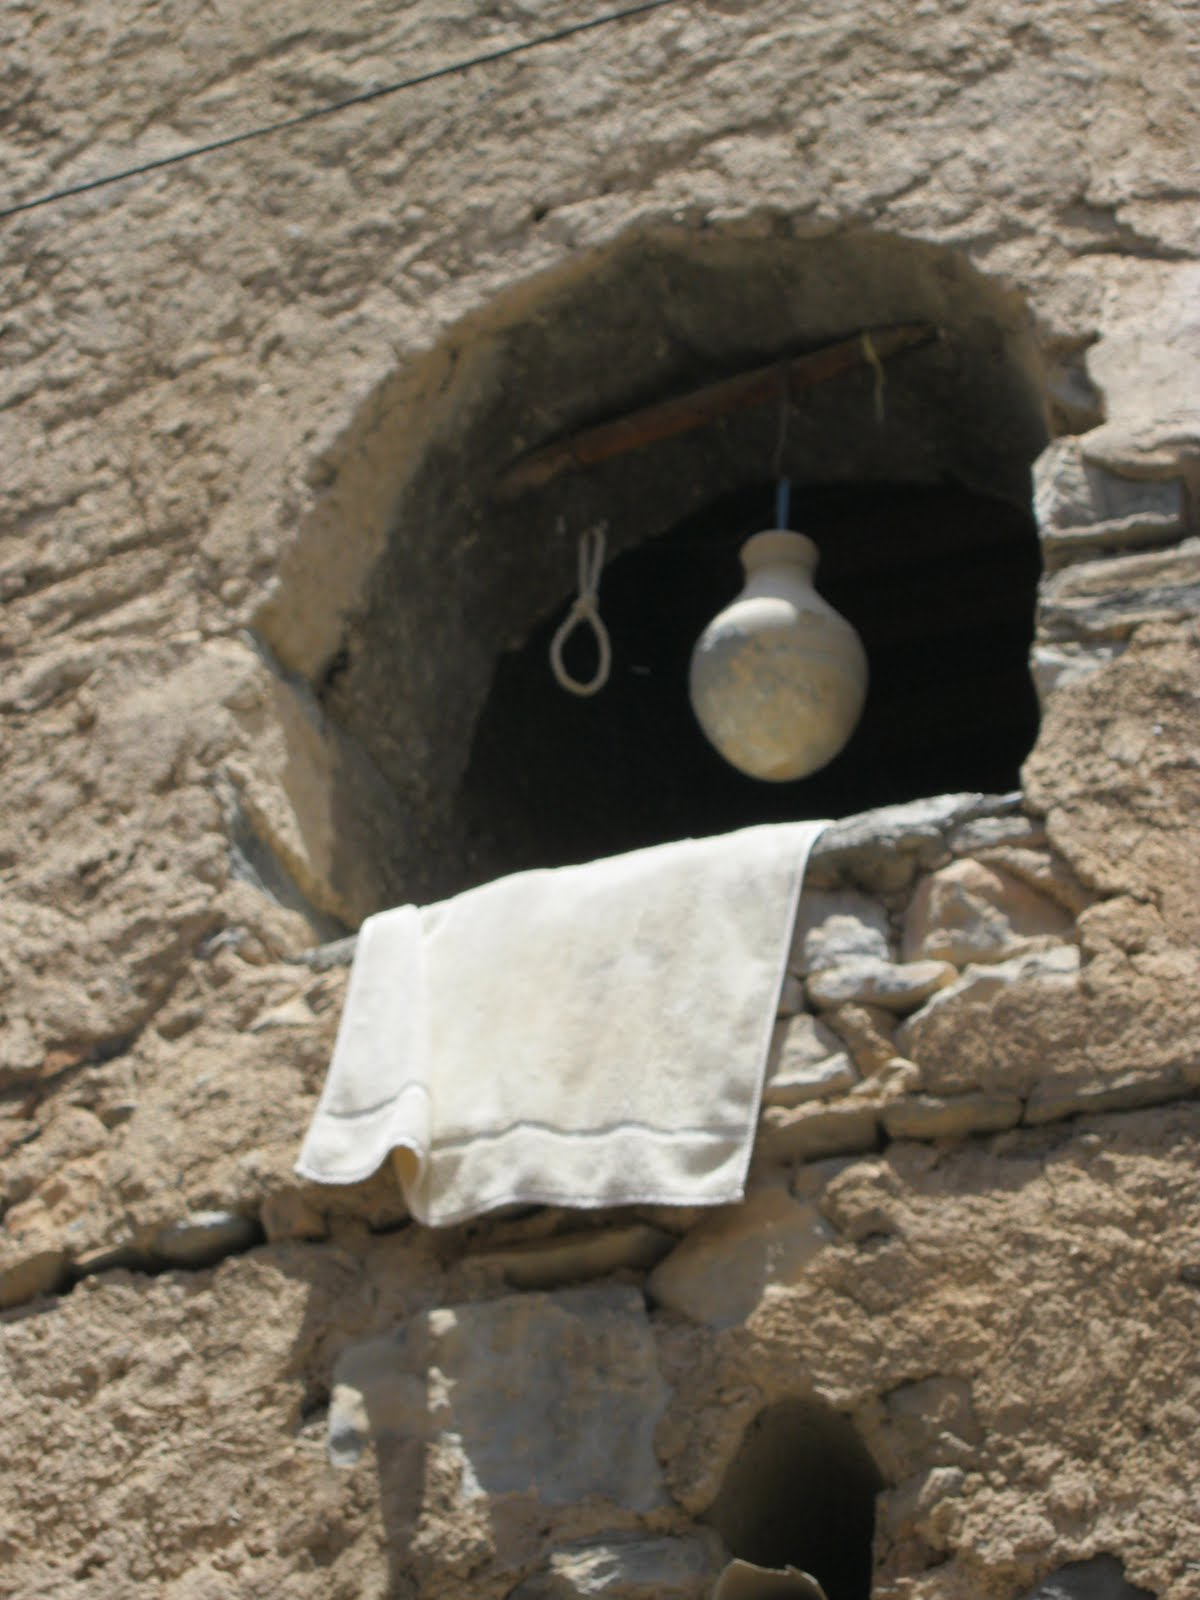 Photograph. A round window opens up in a stone wall. A white towel drapes over the ledge. A round, bulbous earthenware water urn hangs suspended from a bar mounted across the top of the window. Next to it is an empty looped rope, awaiting its own urn.